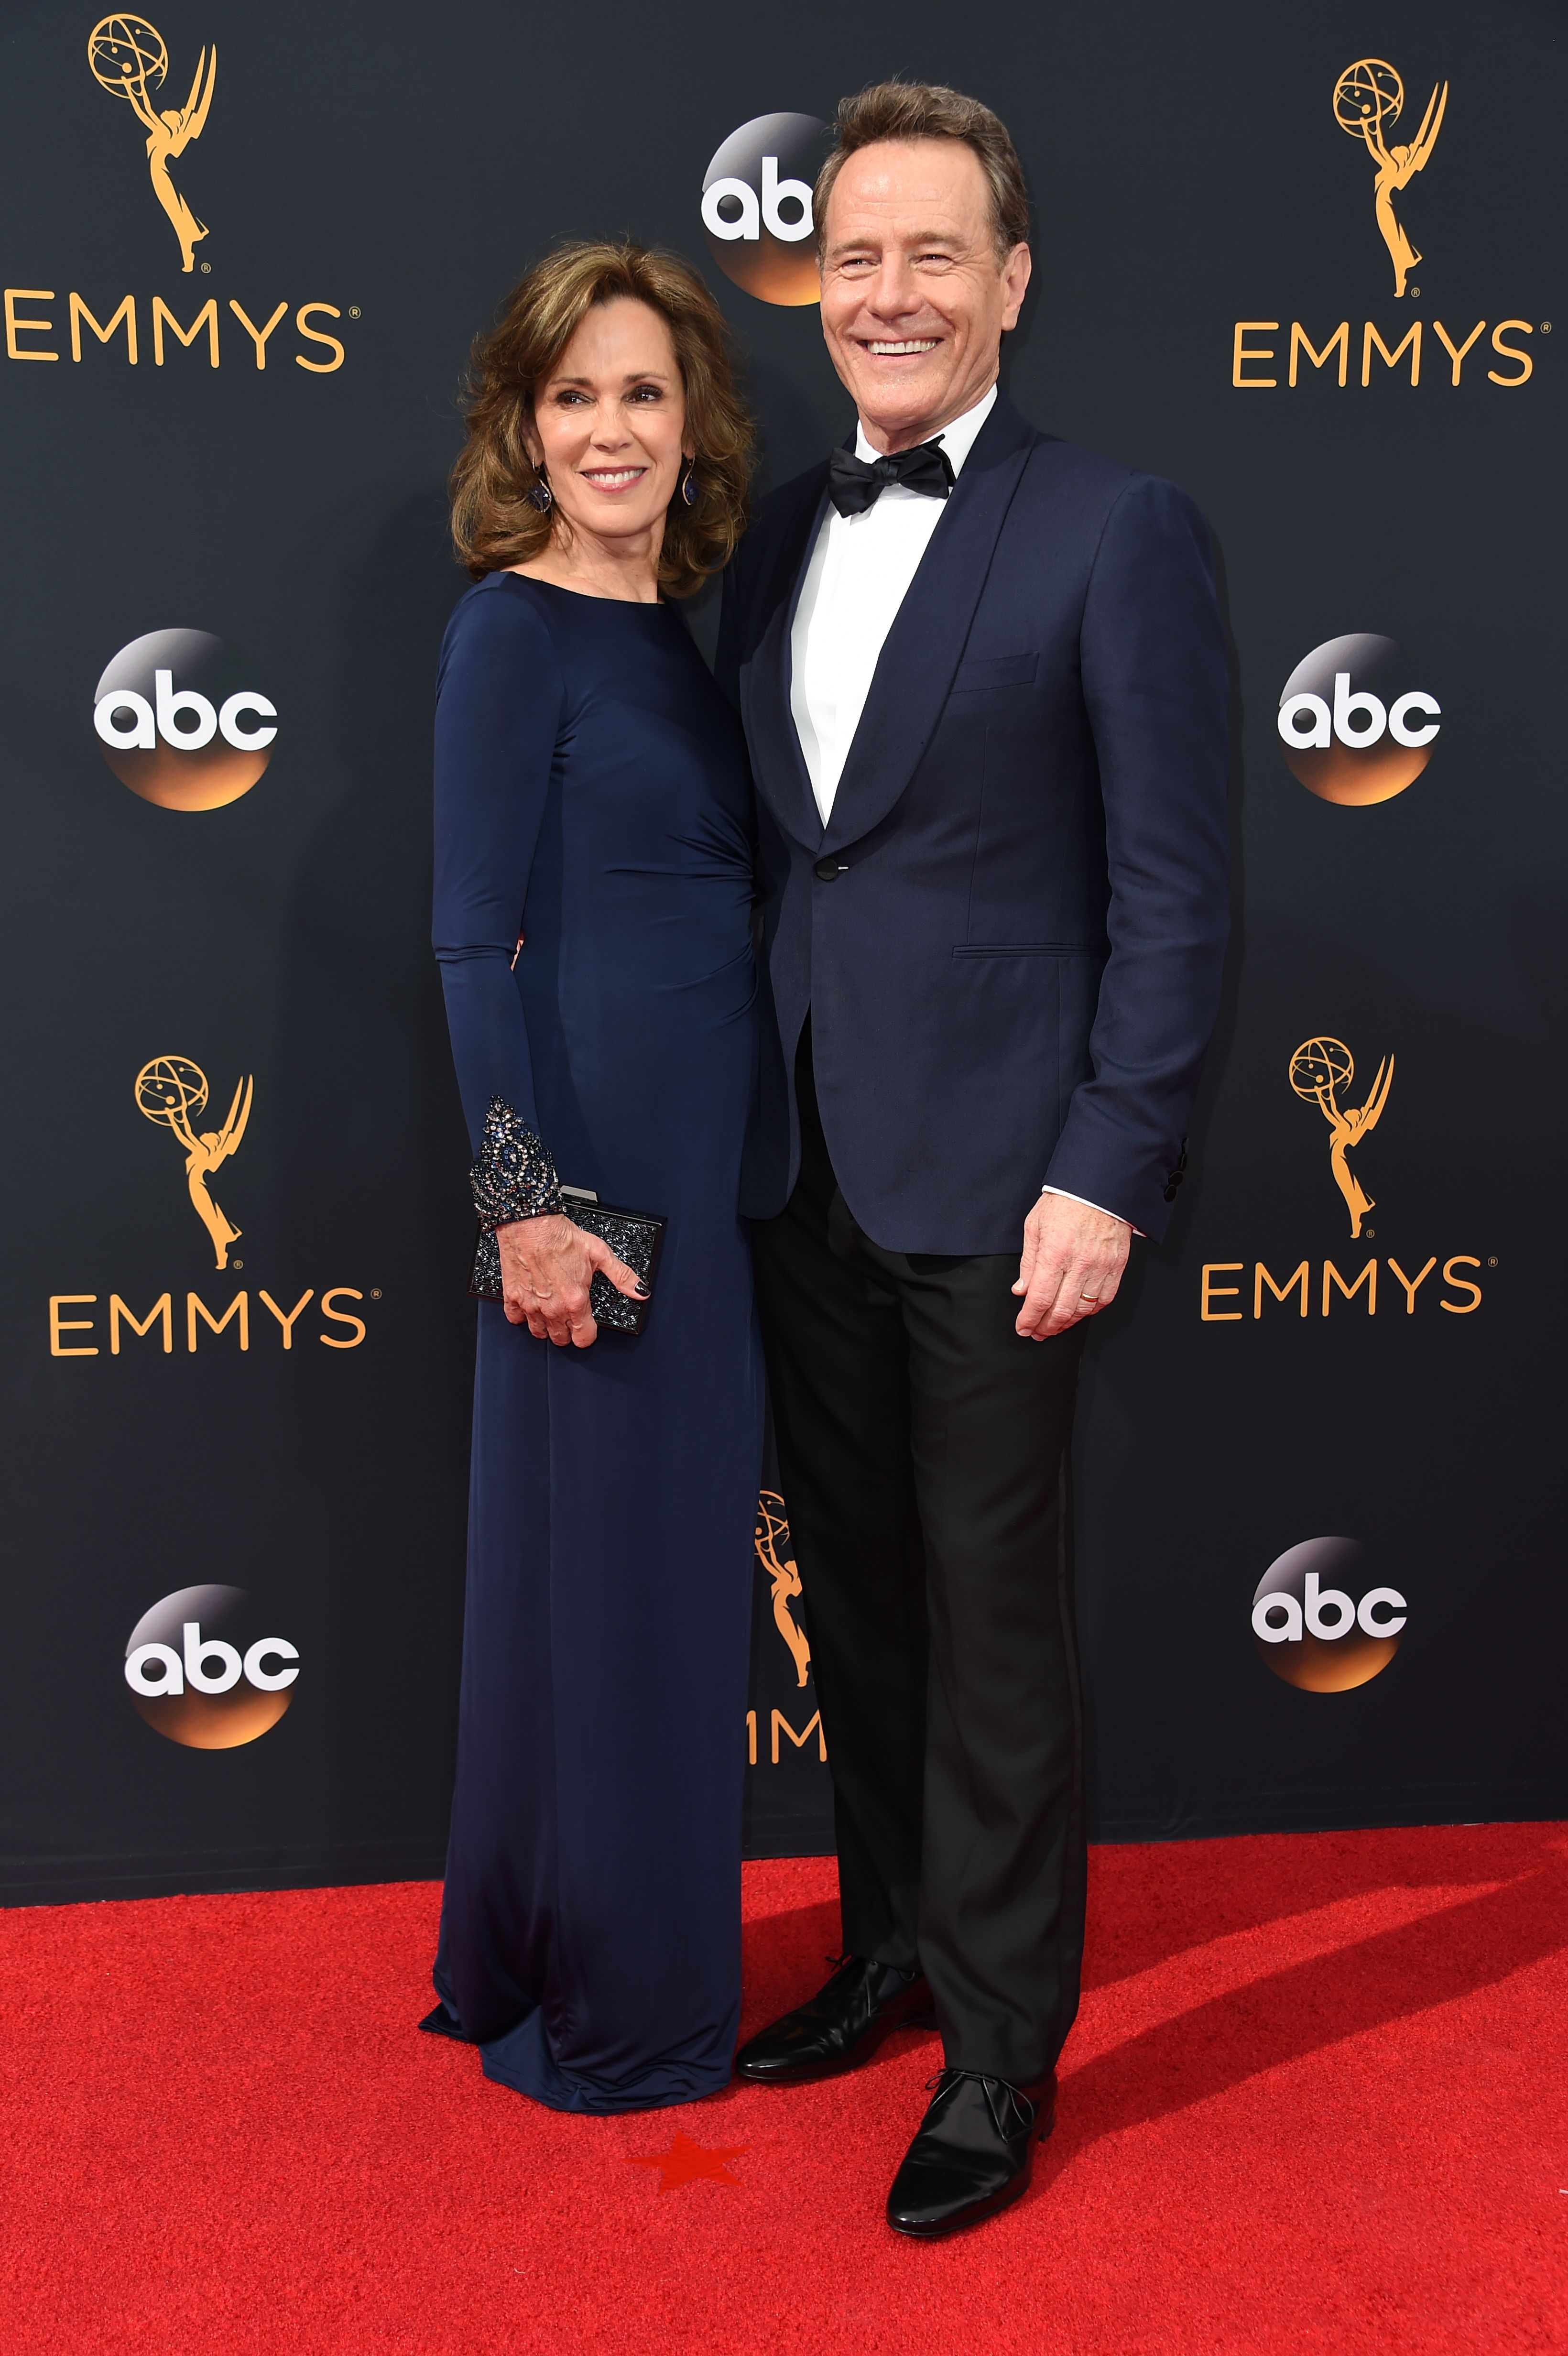 Robin Dearden and Bryan Cranston arrive at the 68th Annual Primetime Emmy Awards at Microsoft Theater on Sept. 18, 2016 in Los Angeles.